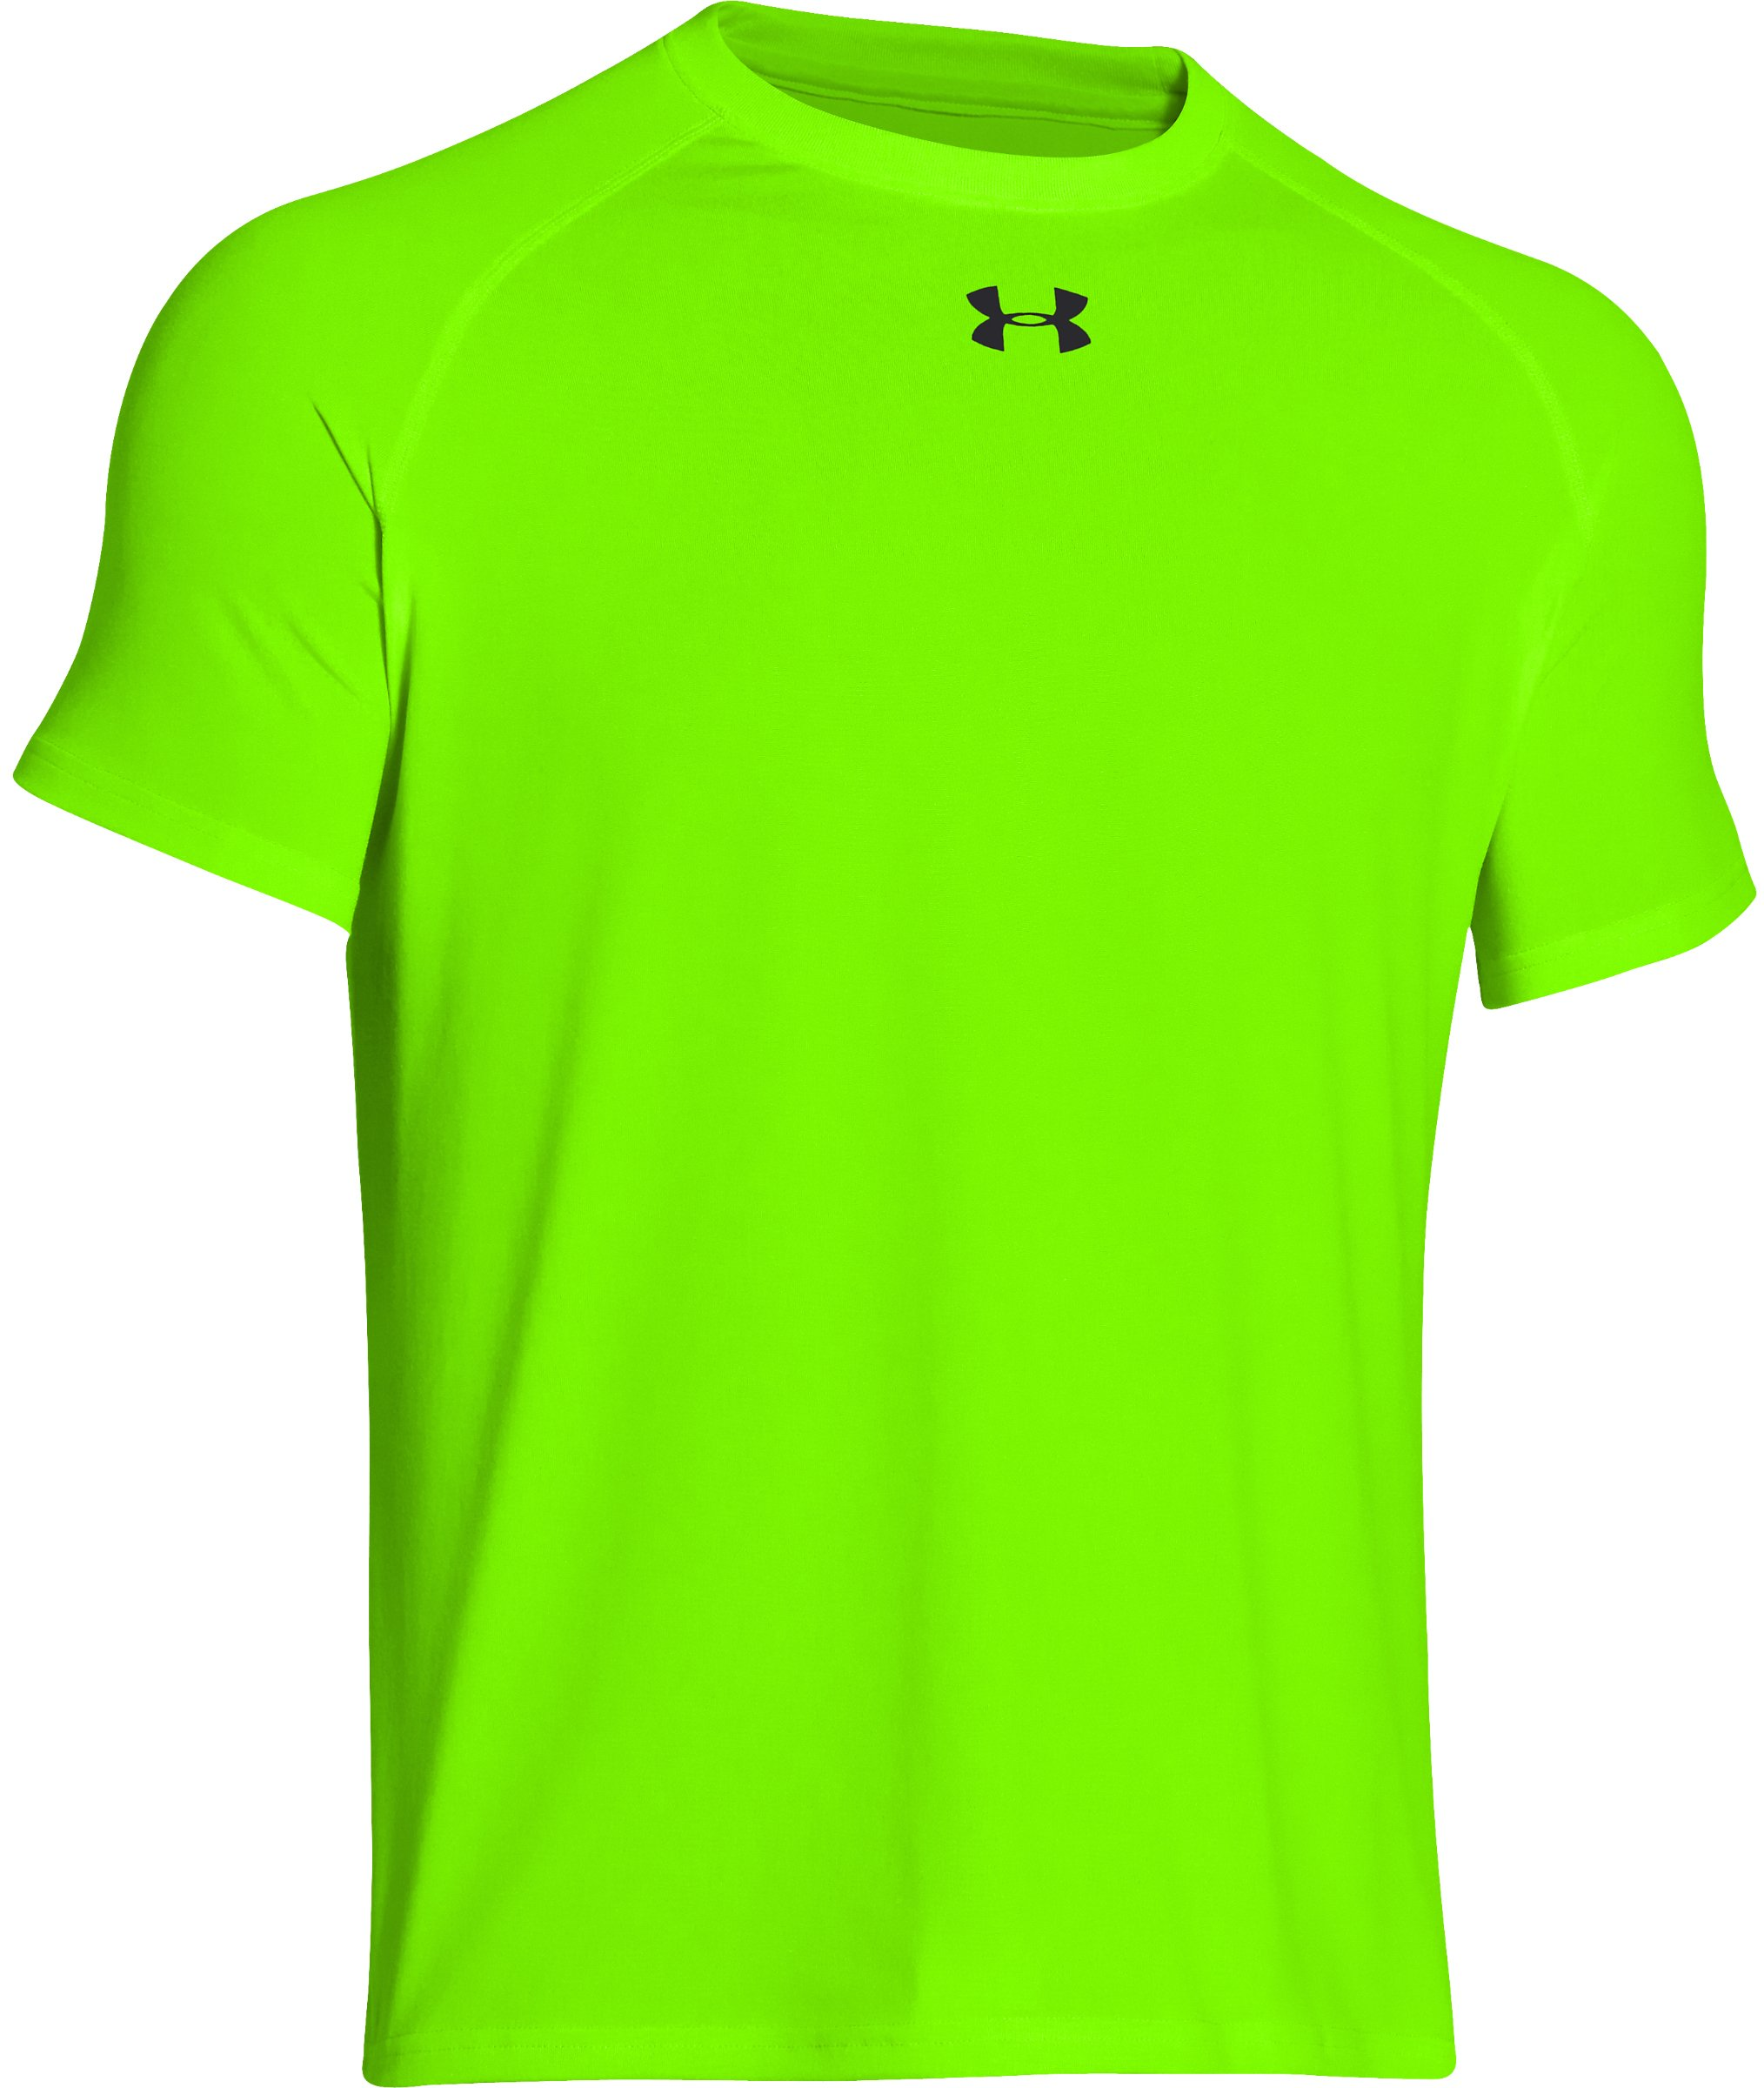 Under Armour Youth S/S Locker T-Shirt-yellow-youth XL